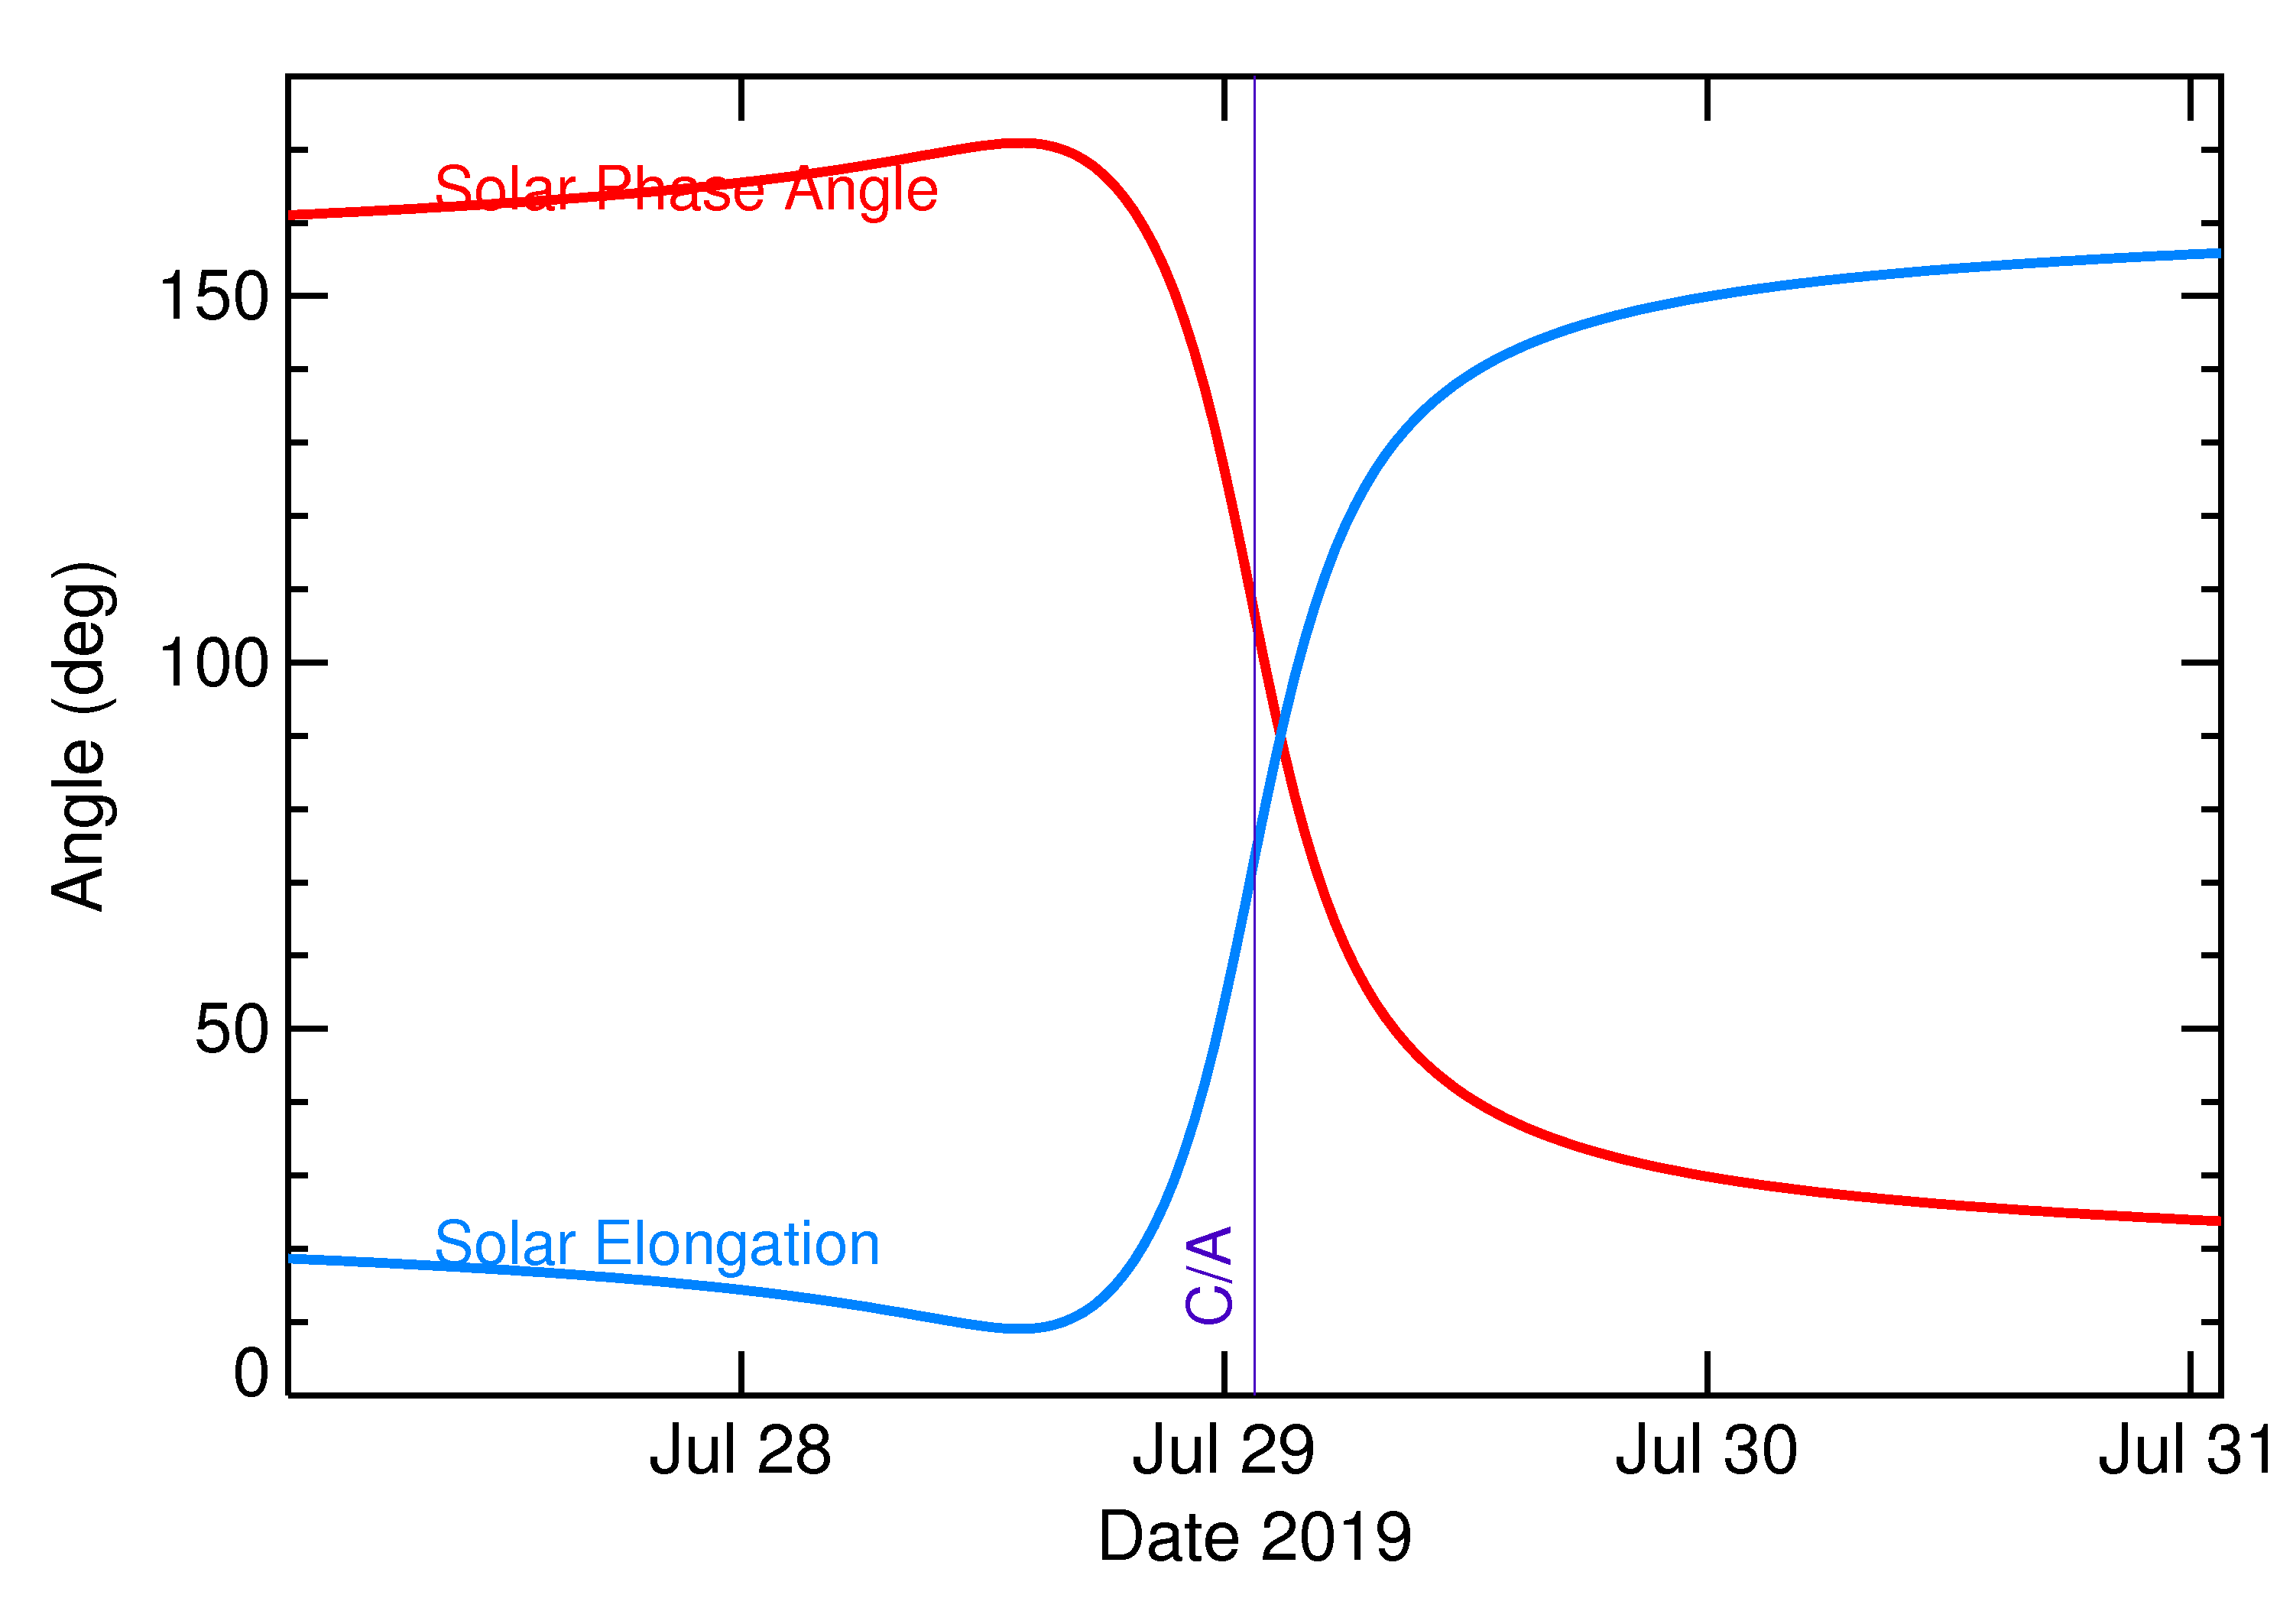 Solar Elongation and Solar Phase Angle of 2019 ON3 in the days around closest approach